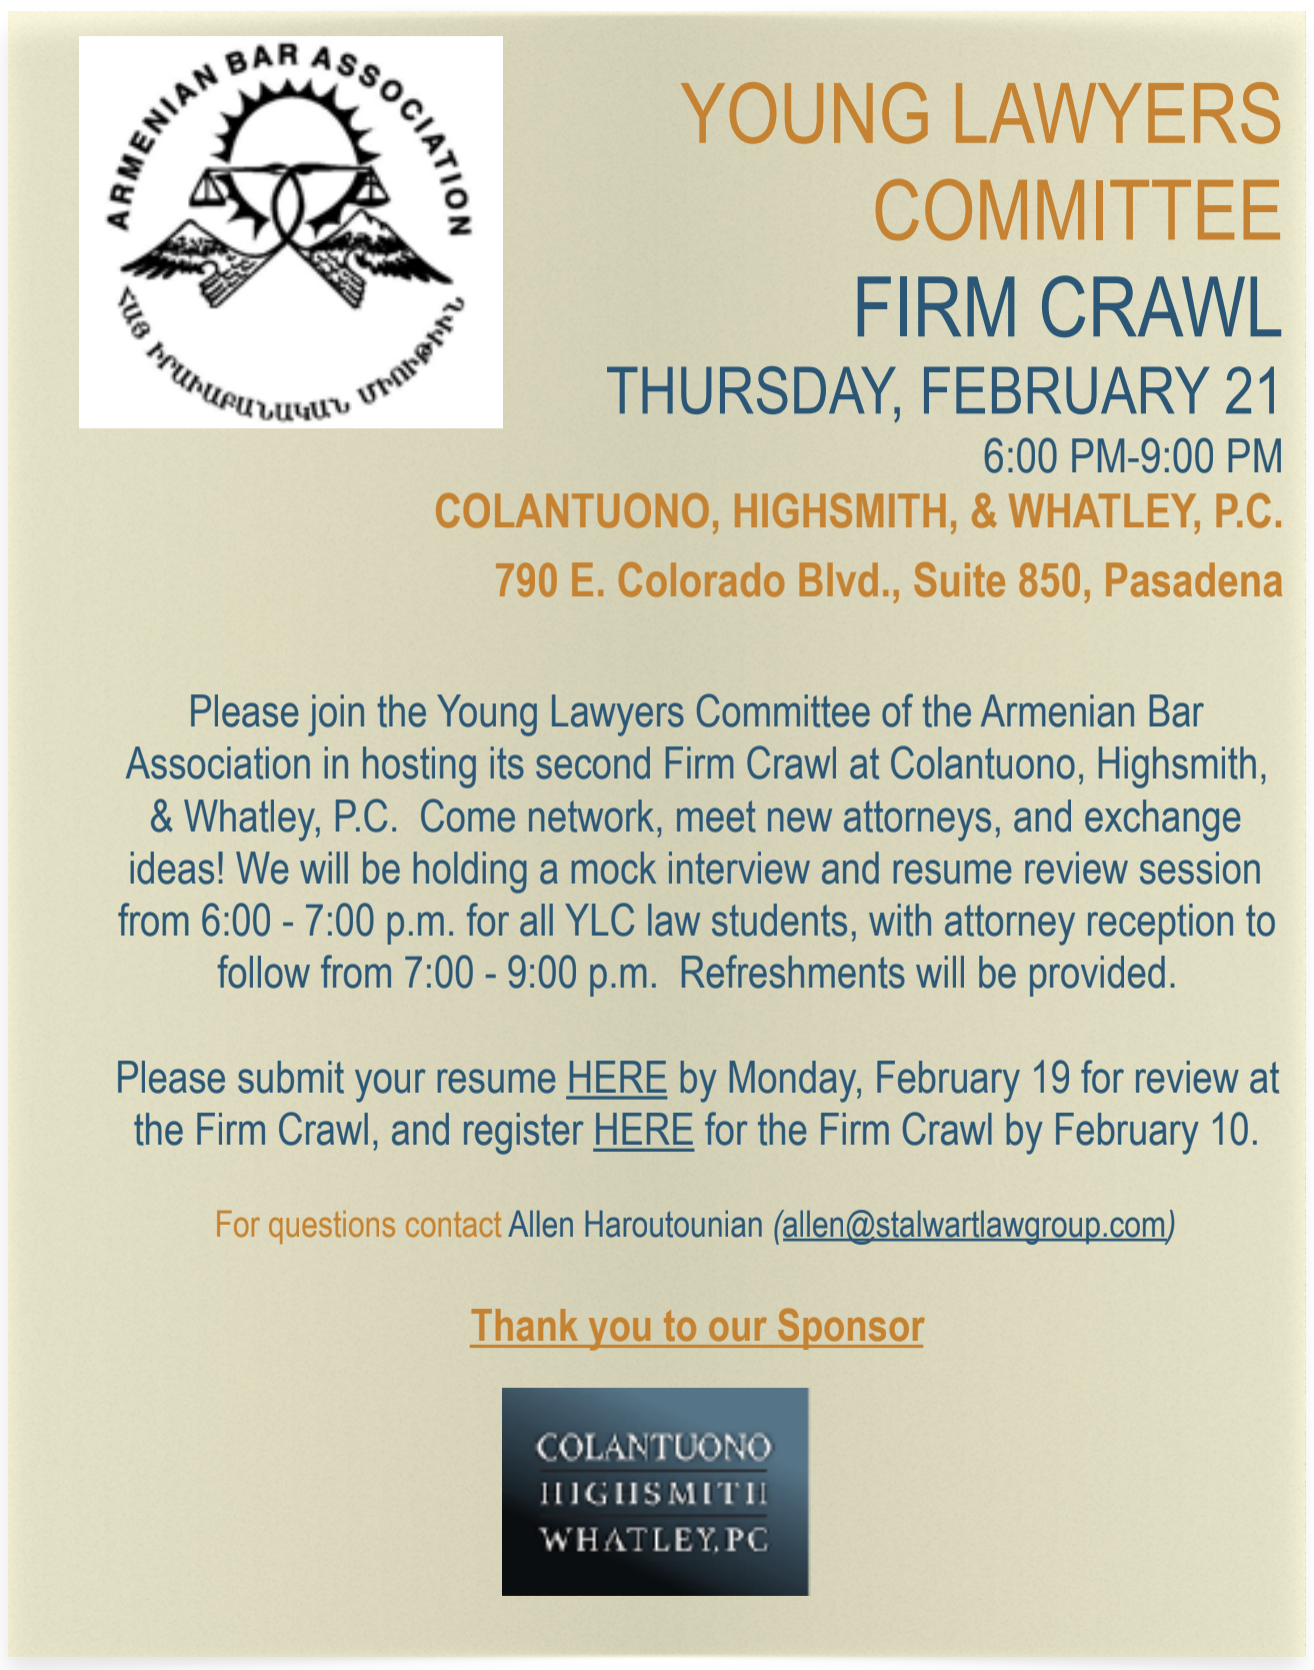 Please Join The Young Lawyers Committee Of Armenian Bar Ociation On Thursday February 21 2019 In Hosting Its Third Firm Crawl Hosted By Colantuono